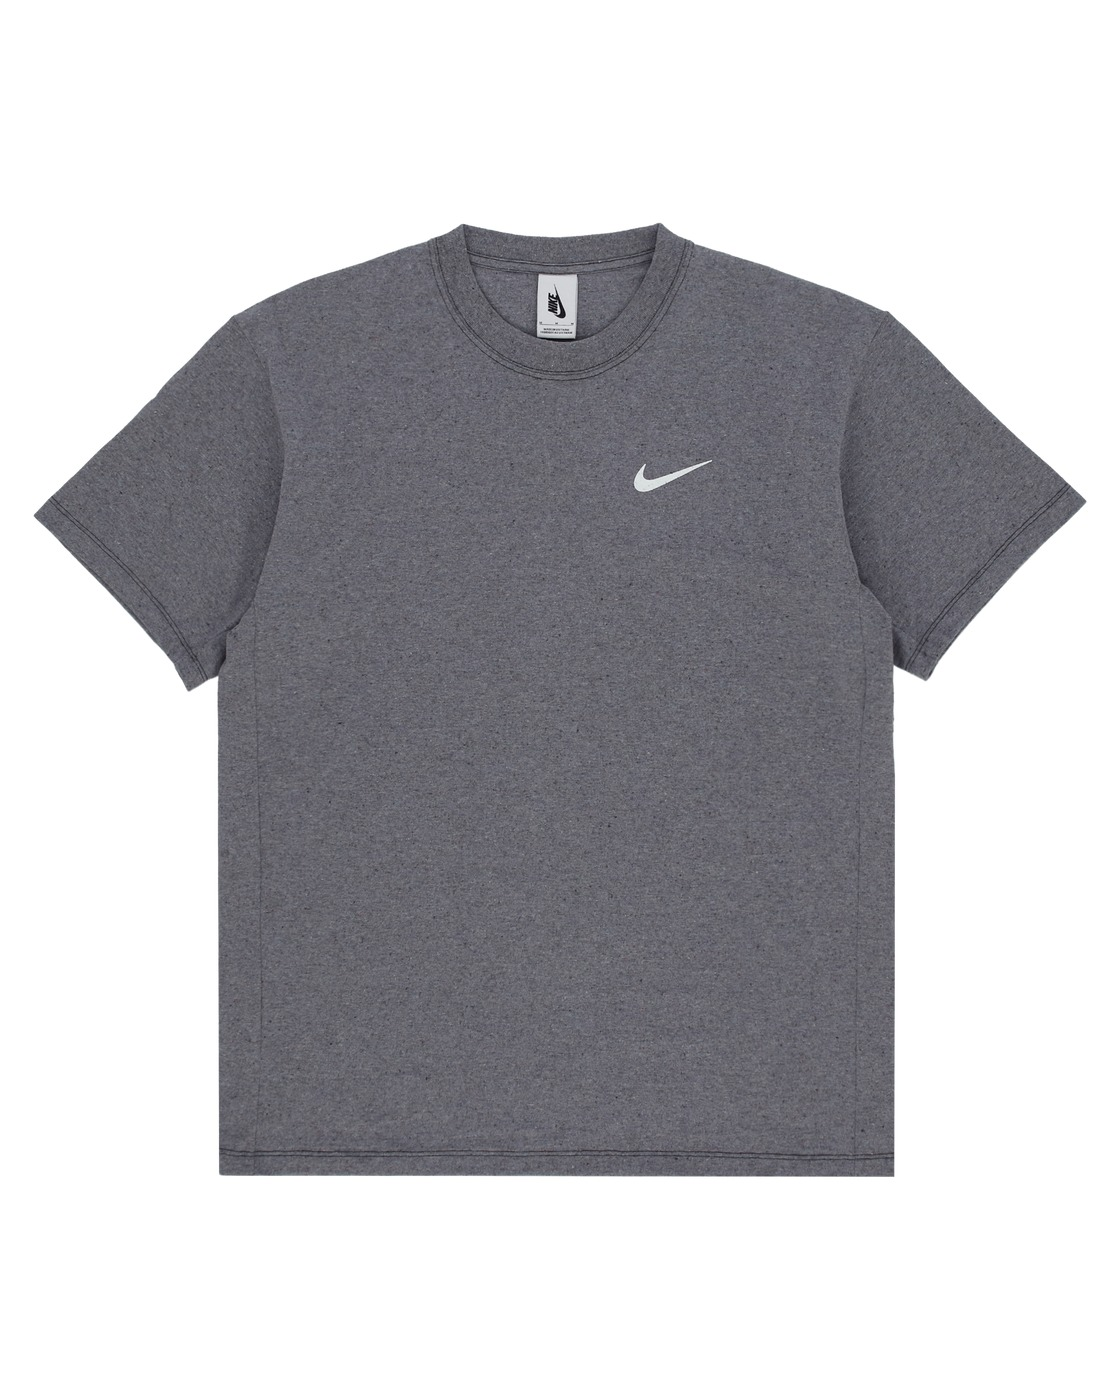 Nike Special Project Space Hippie T Shirt Silver Lilac